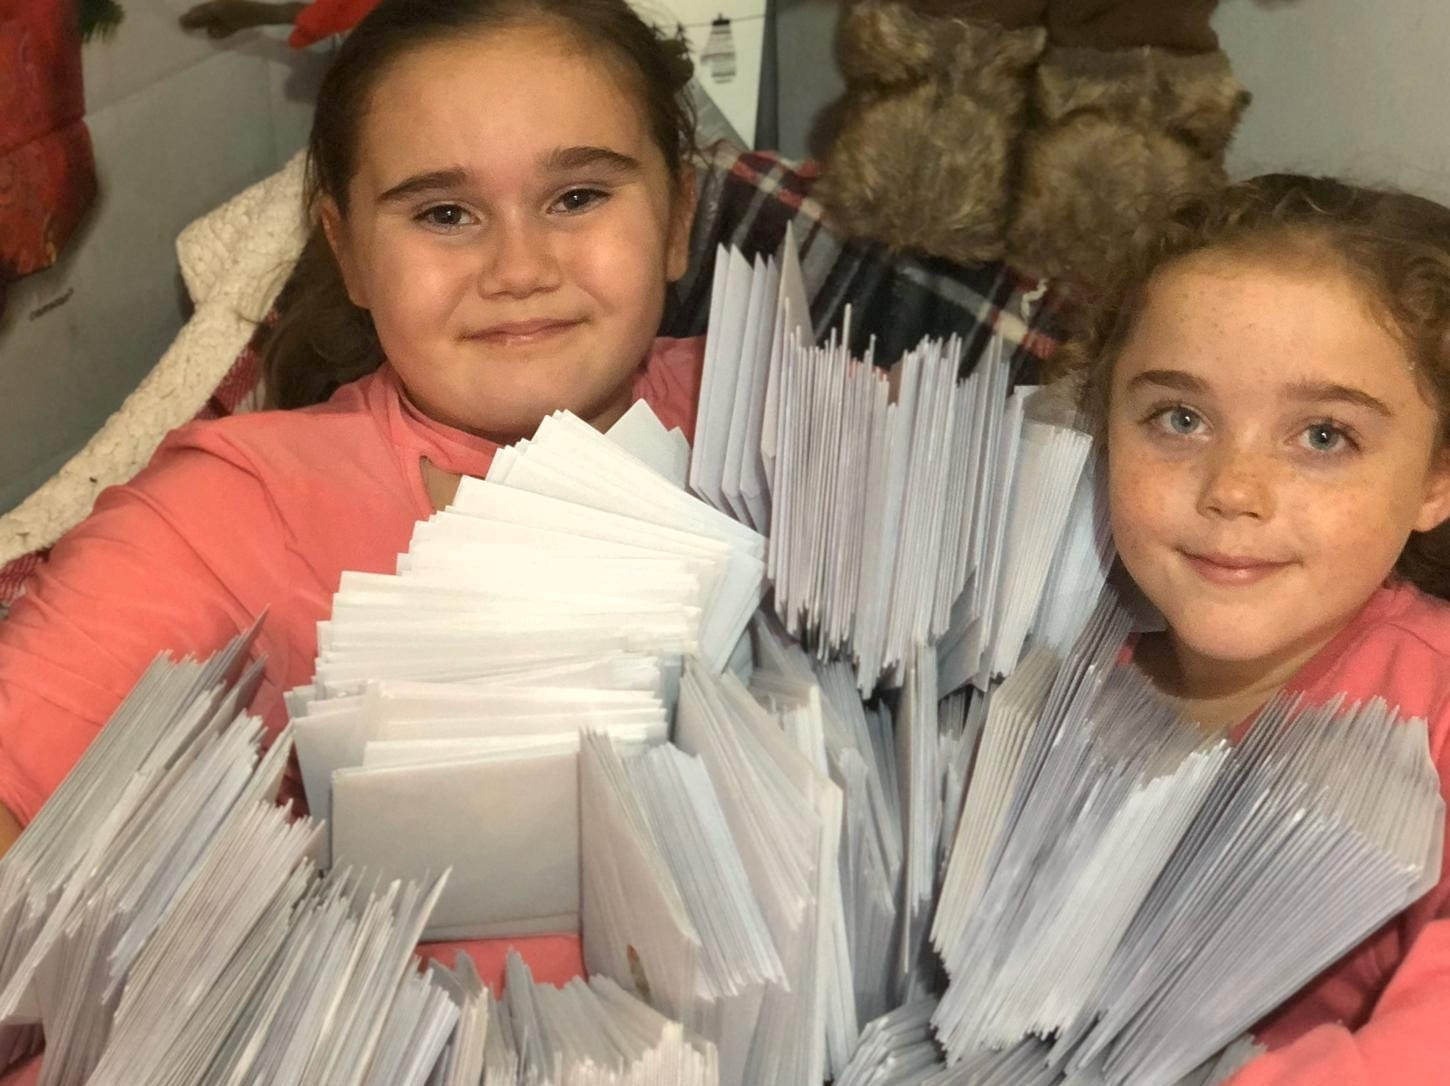 'It's All About Making People Smile' - Schoolgirl Brought Festive Joy To Her Village By Hand-Delivering More Than 1000 Christmas Cards - Despite Only Having One Leg